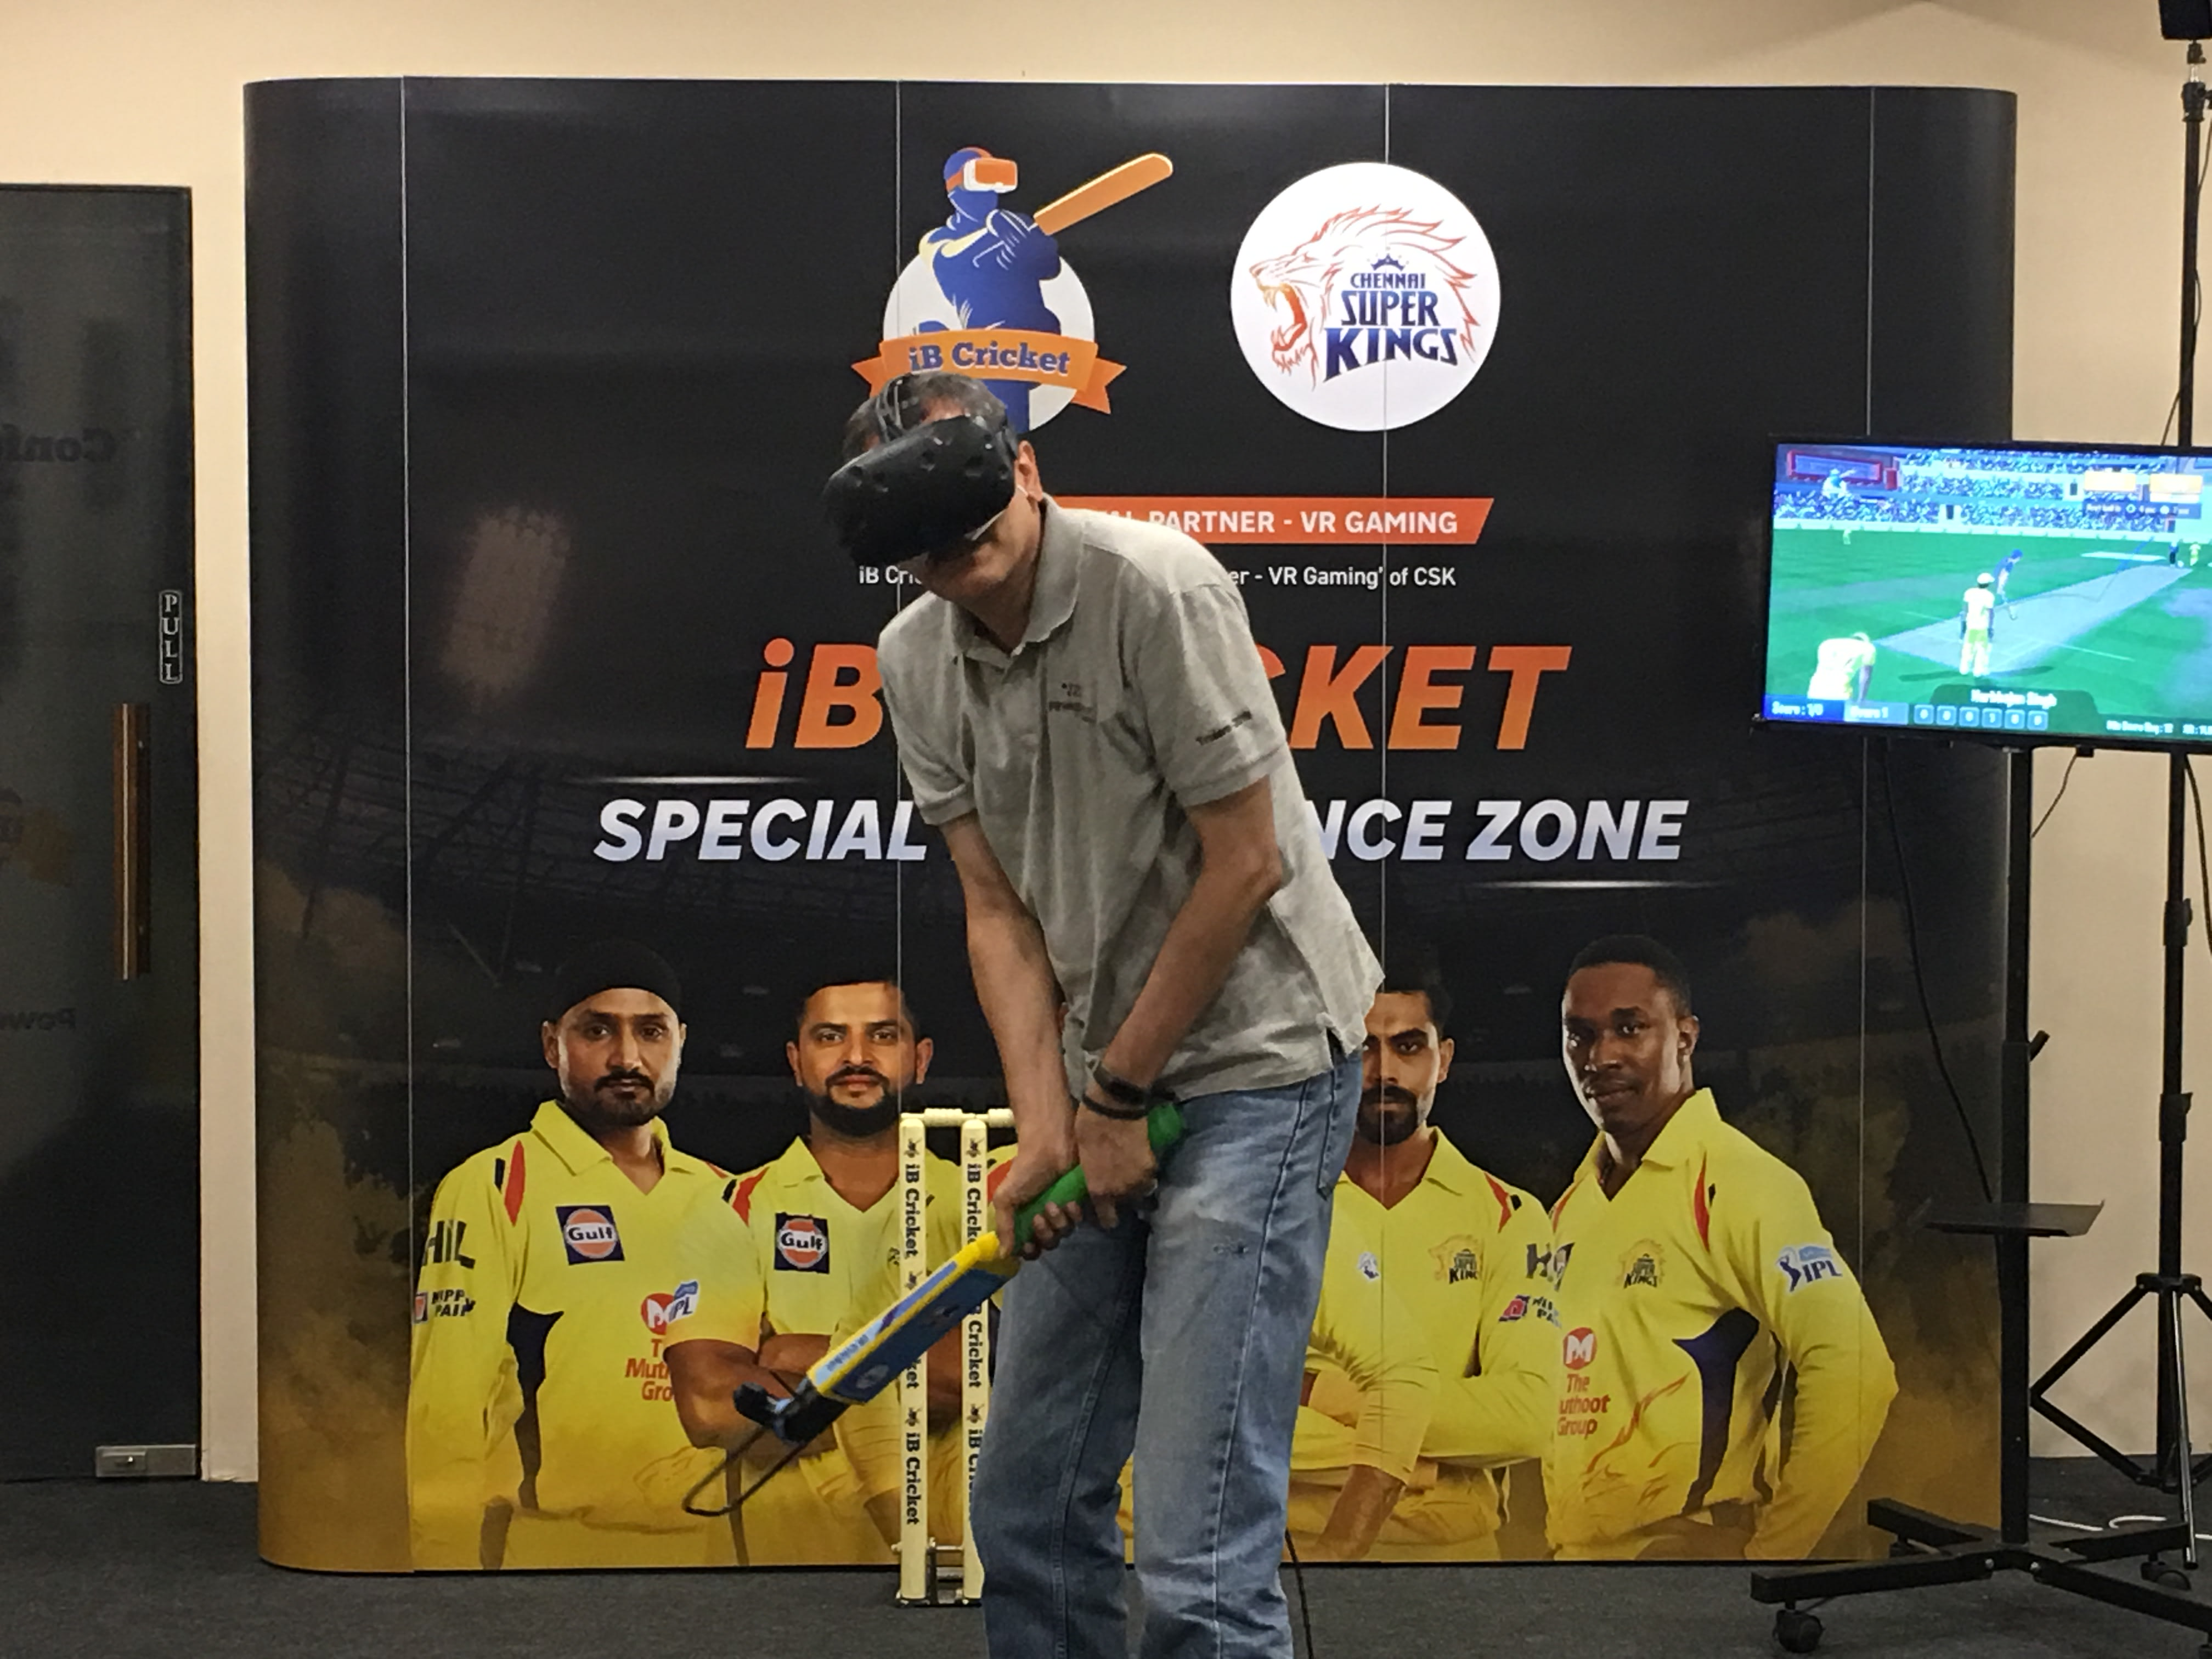 CSK-iB Cricket Fan Tour!